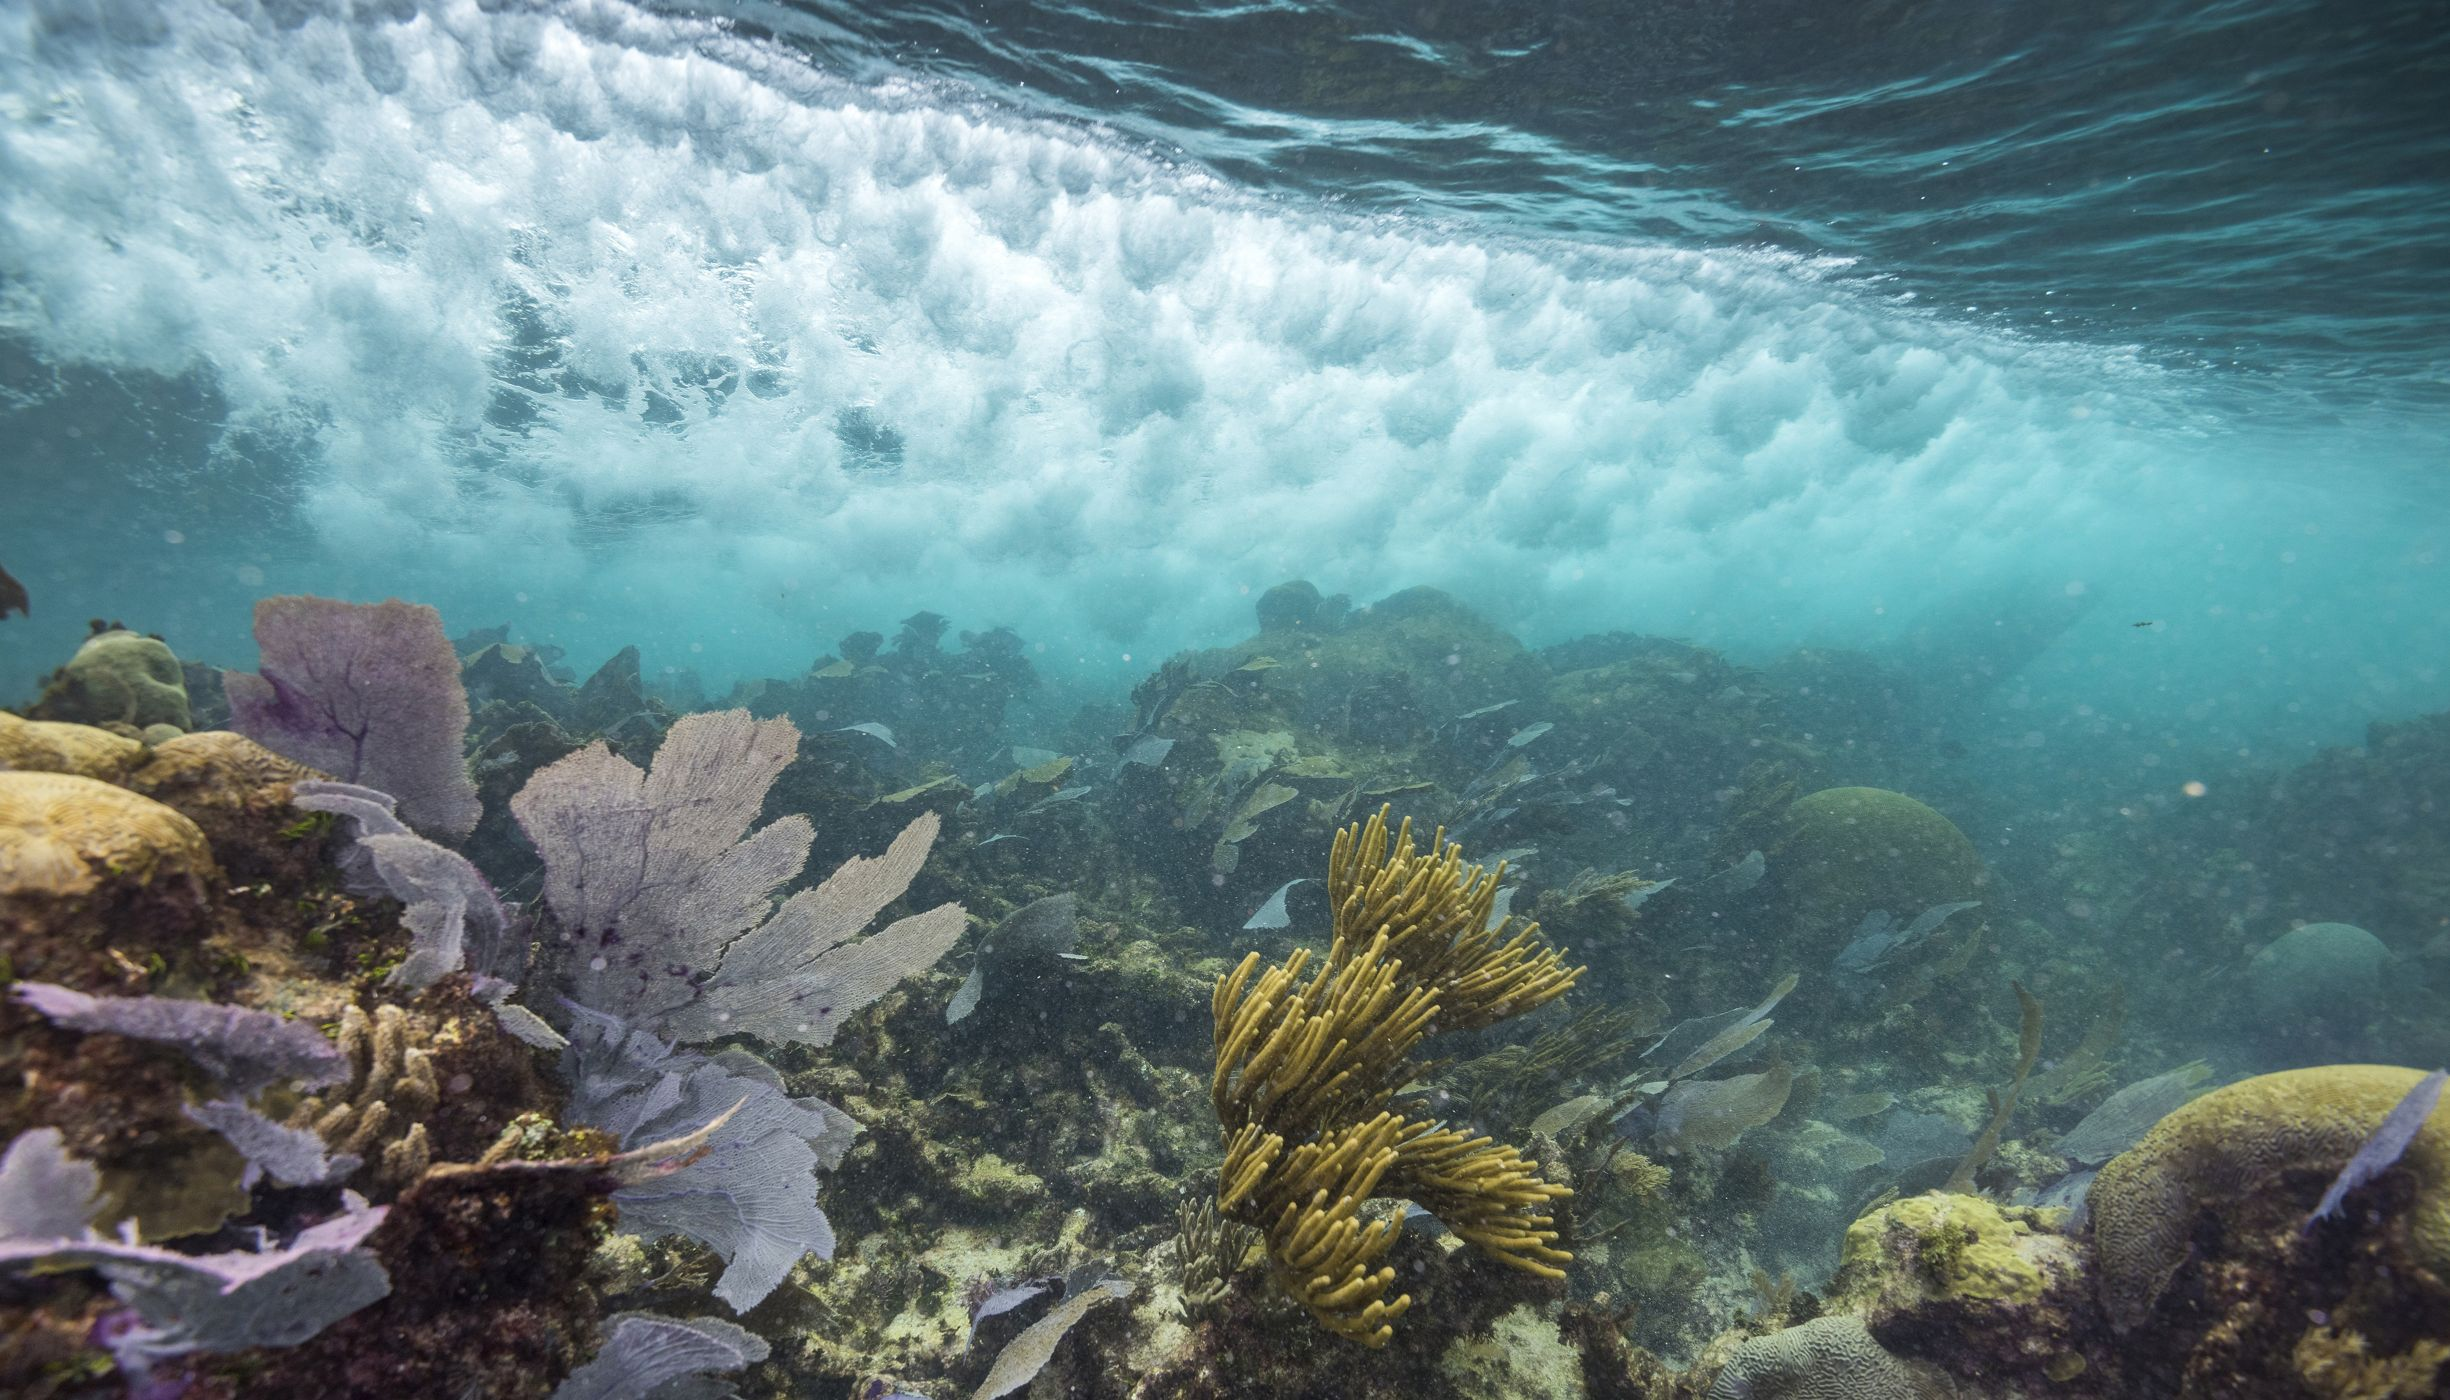 Documenting wave action along a coral reef. Healthy coral reefs help to absorb wave impact along shores which in turn helps to prevent beach erosion.